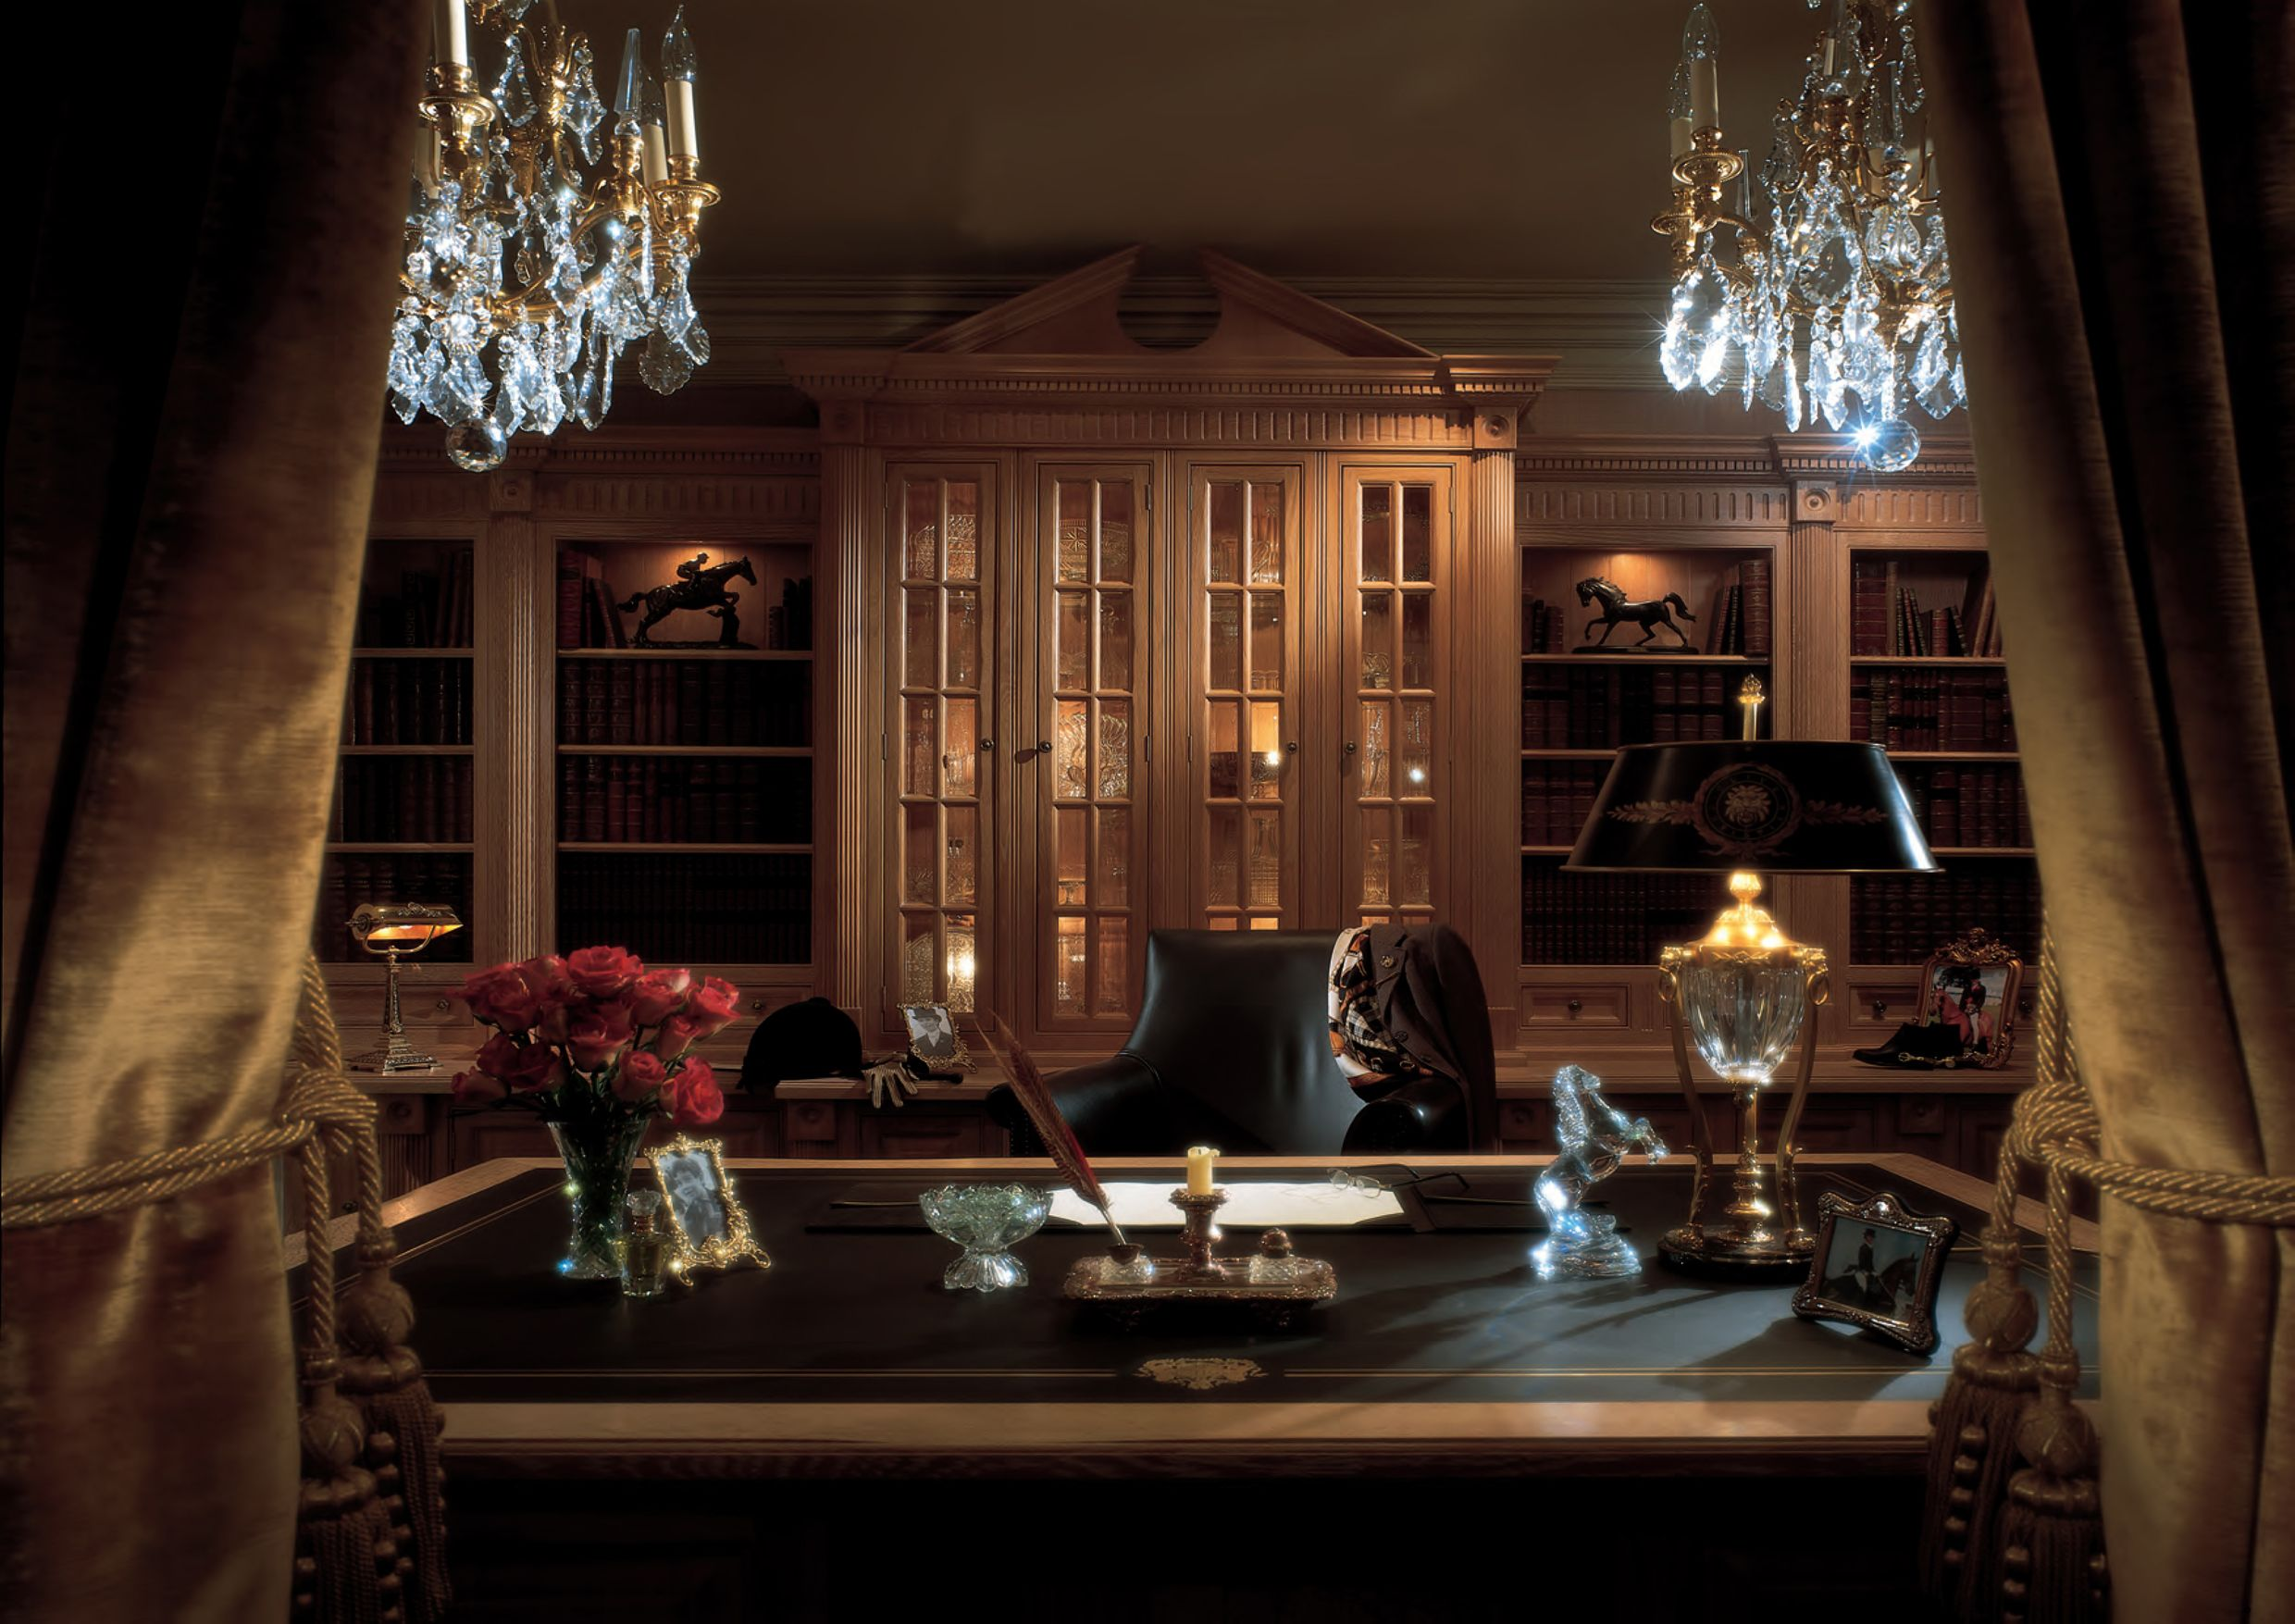 custom home designs christian custom study or home office blends luxury classic home - Luxury Home Office Design